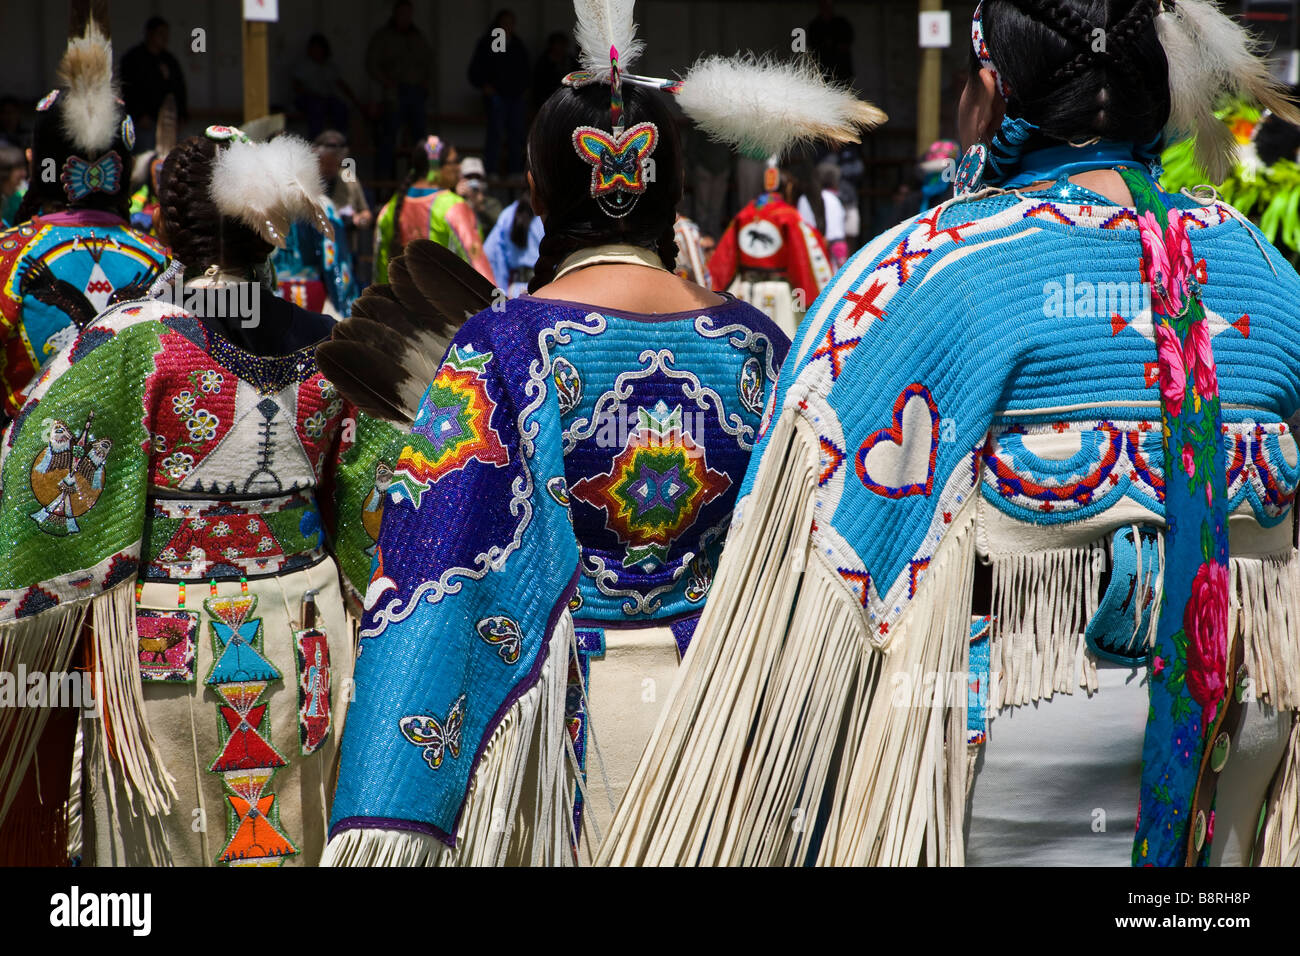 Costumed Indian dancers at North American Indian Days Celebration, 2008, Browning, Montana. - Stock Image